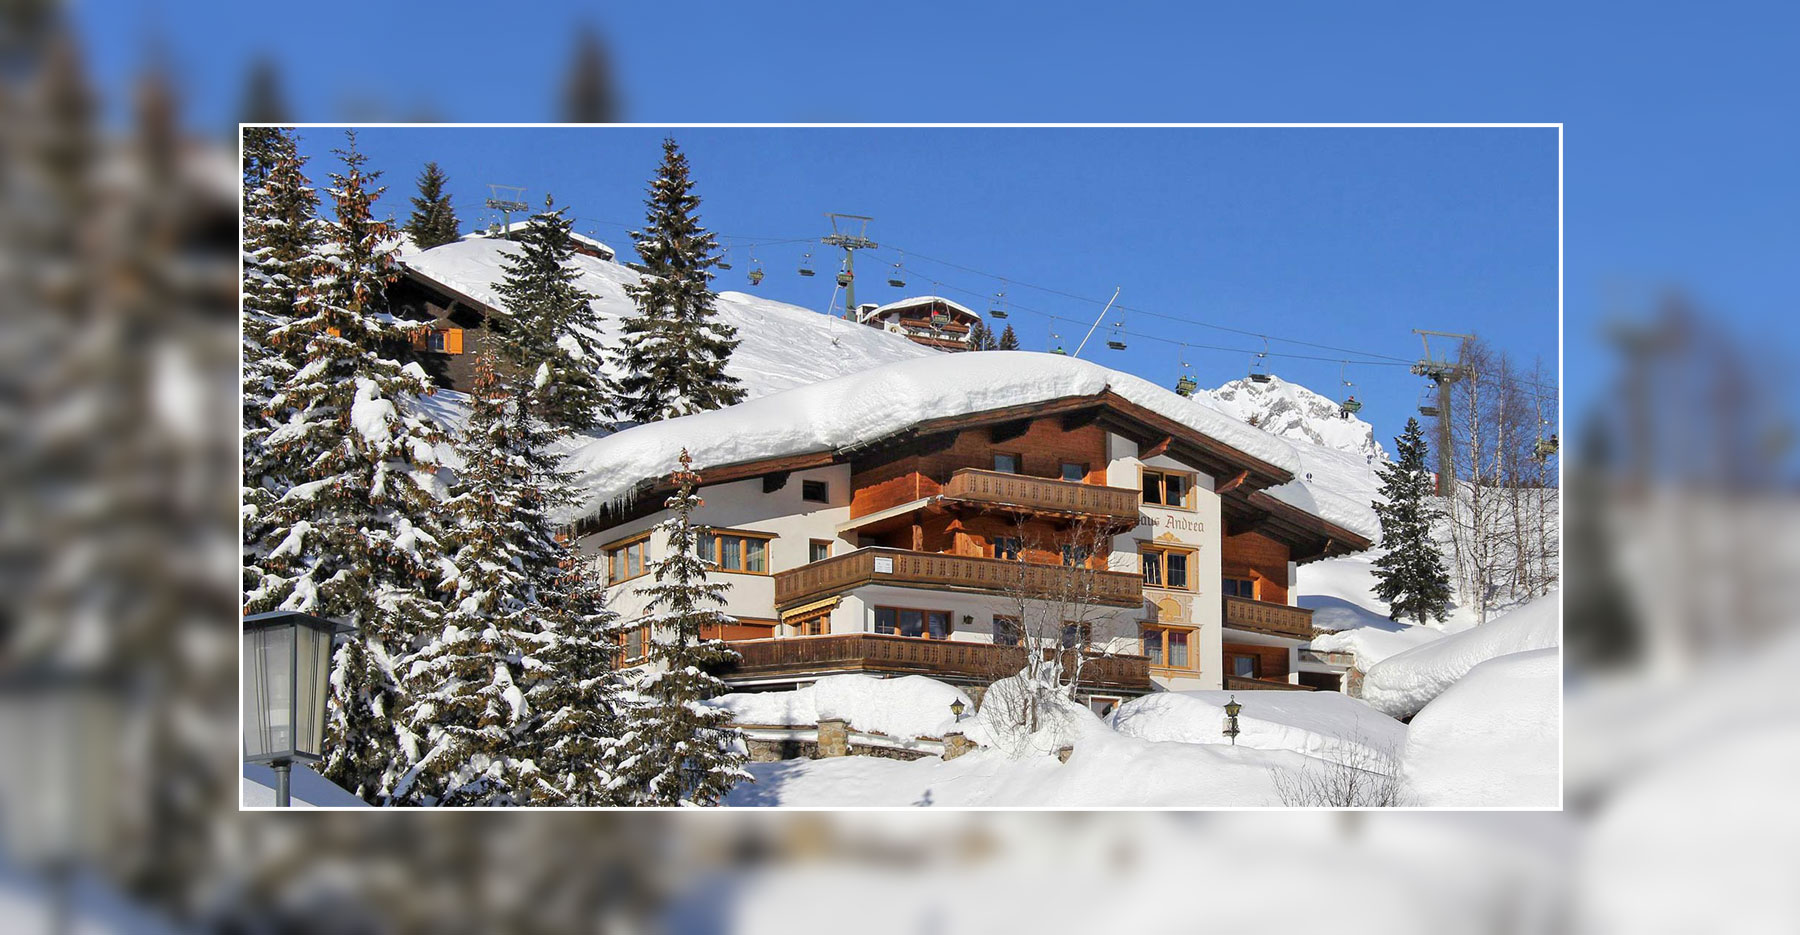 Lech Winter Bilder - Schneehöhen - Appartements Andera - Lech am Arlberg